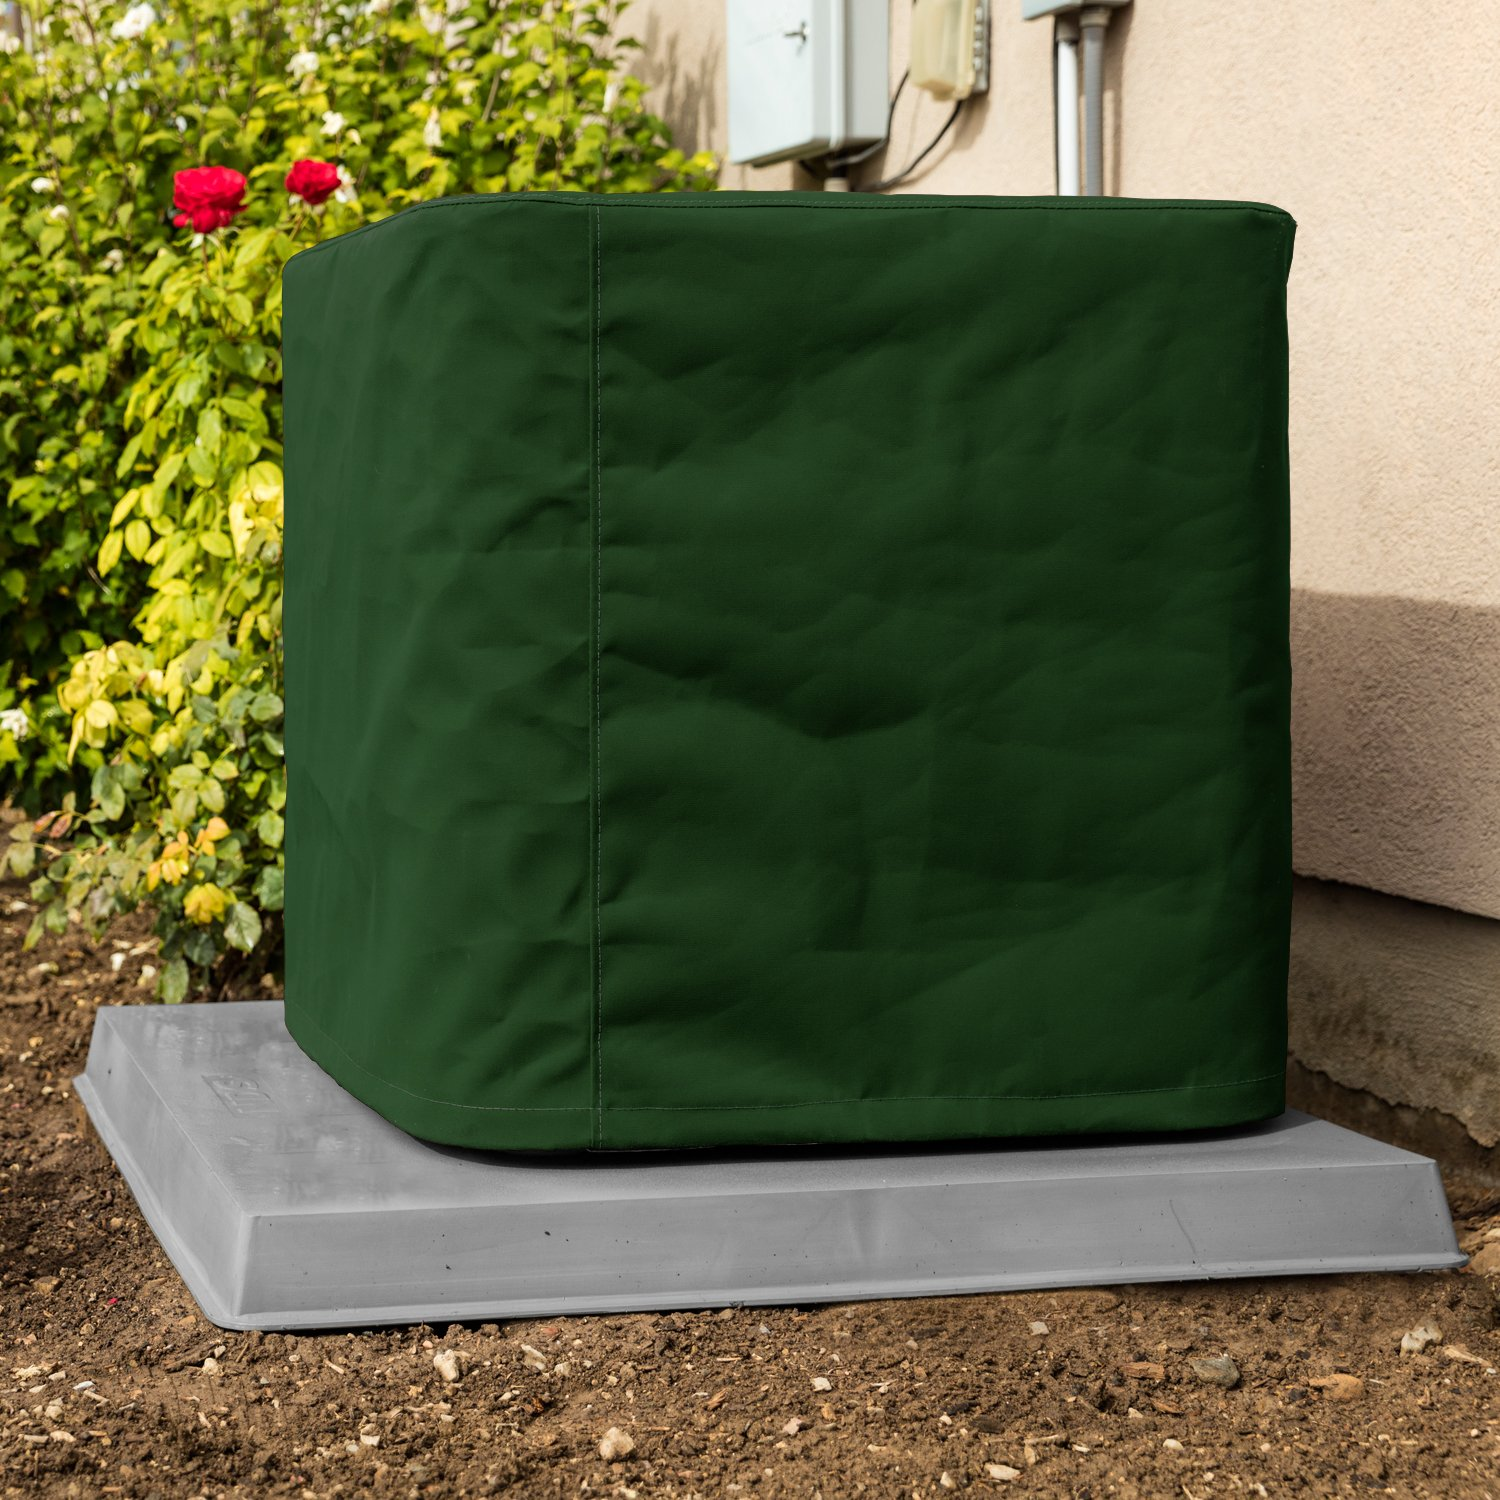 Custom Air Conditioner Cover - Made-to-Order for your exact Make & Model Number - Ultimate Sunbrella Canvas - Forest Green - Made in the USA - 10-year Warranty